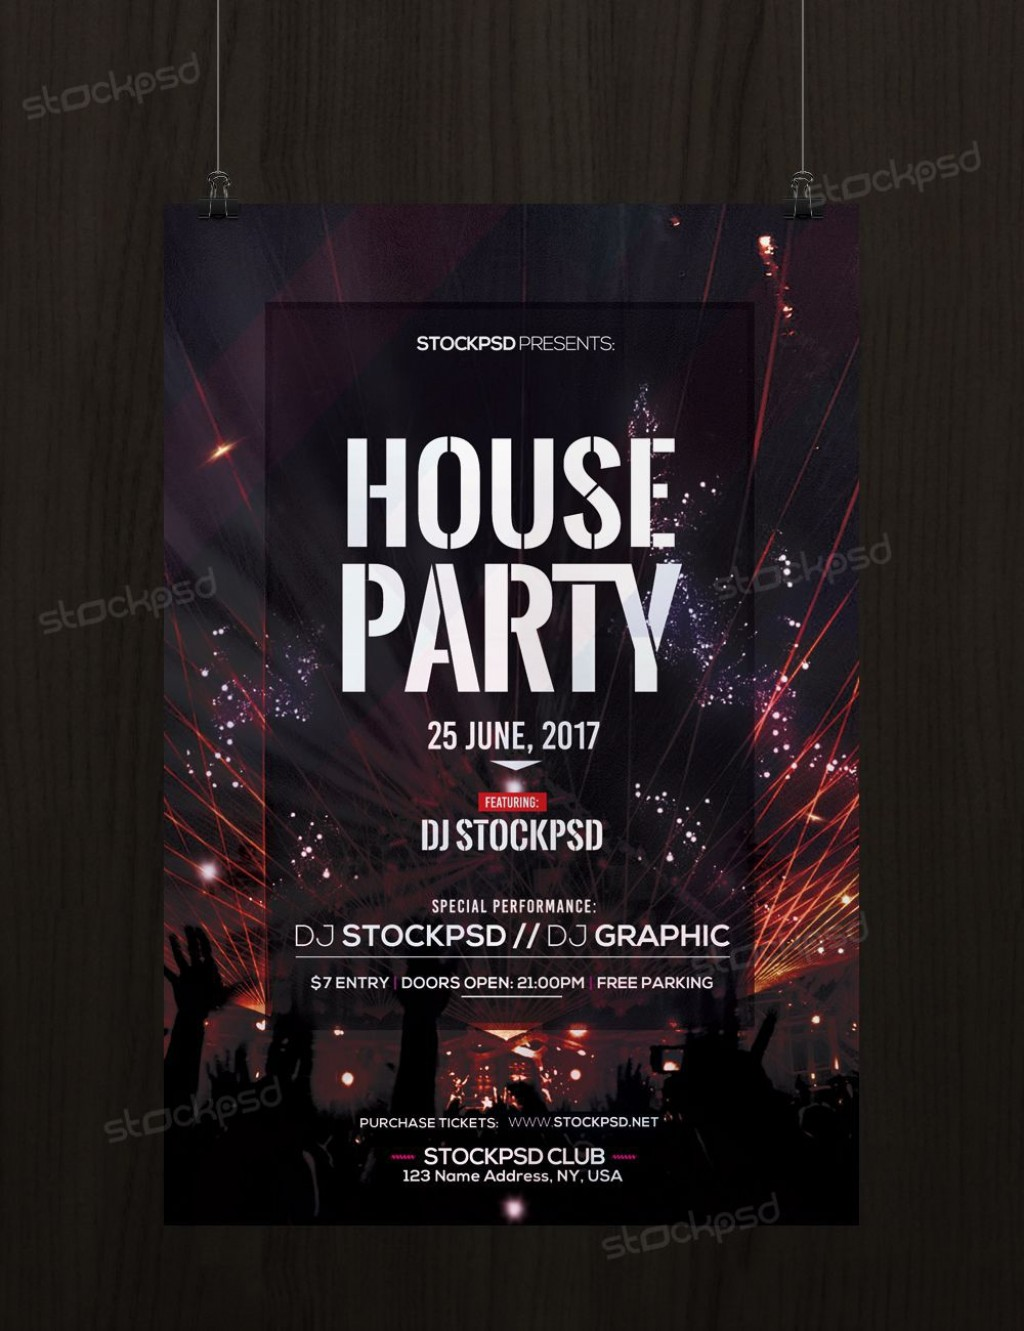 002 Shocking Party Flyer Template Free Picture  50th Birthday Invite Graduation PsdLarge